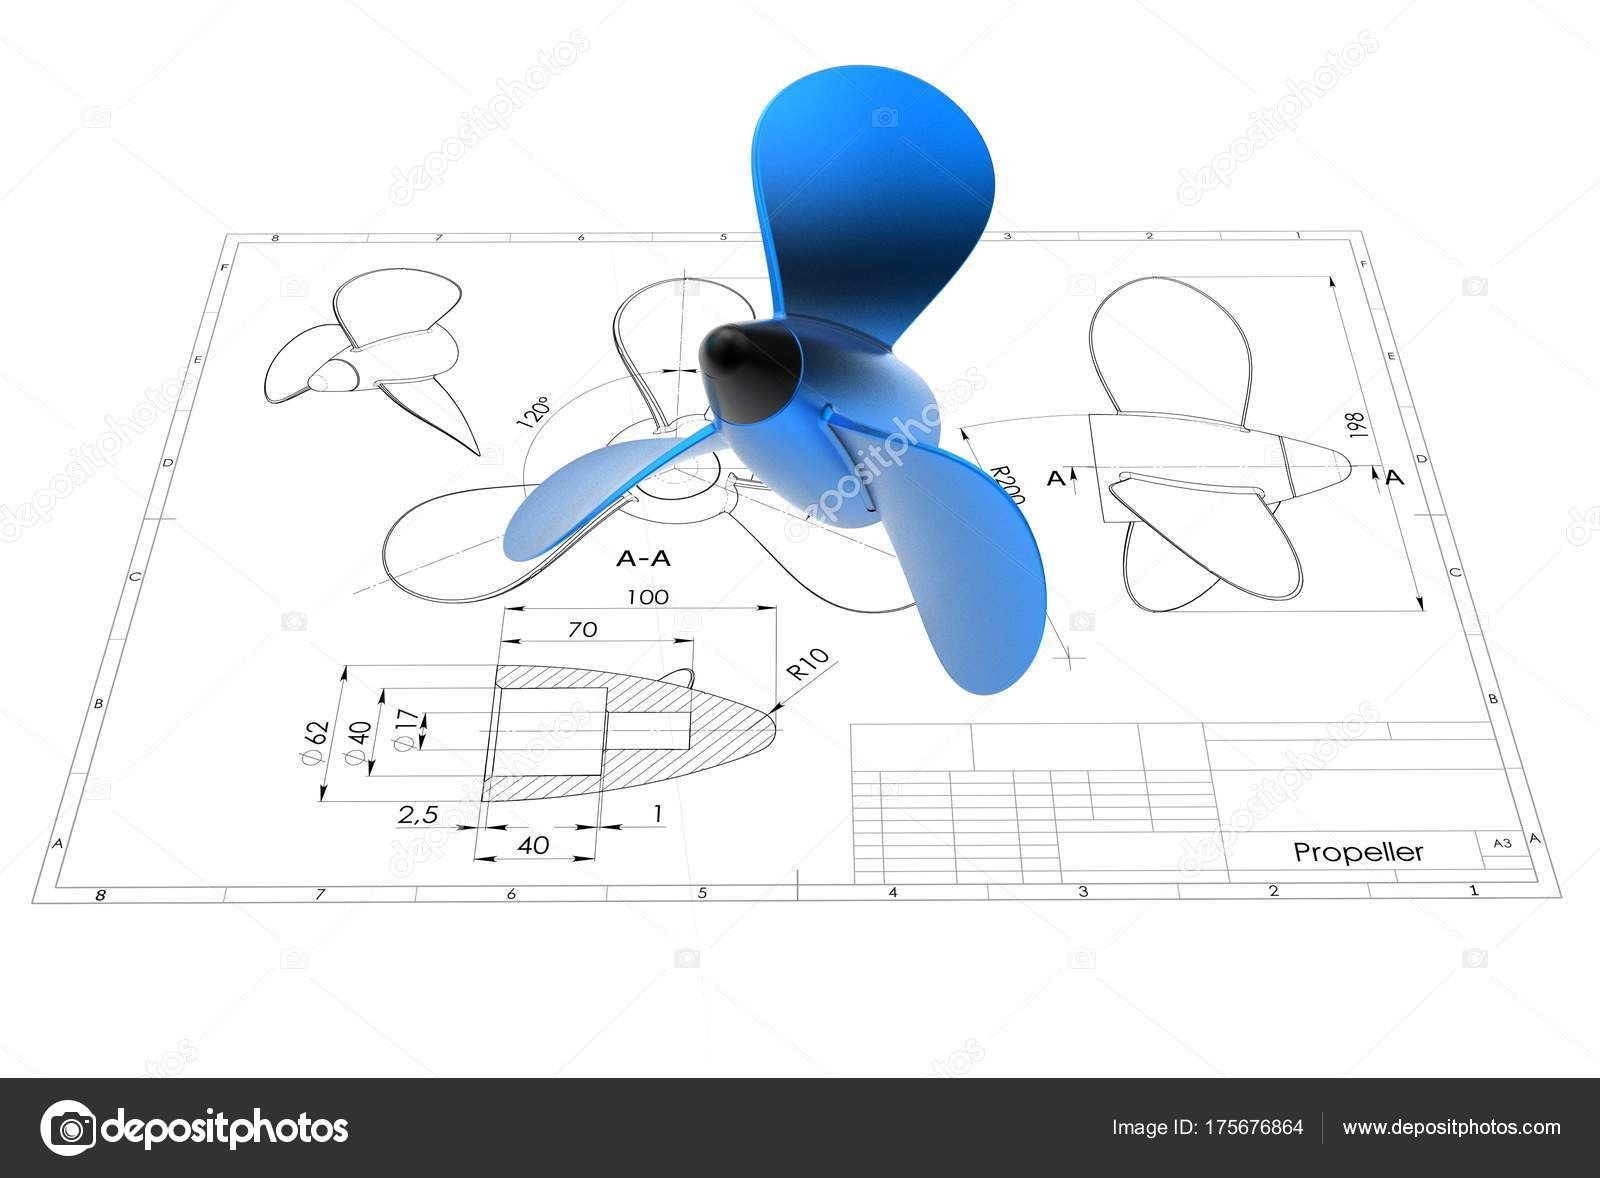 1600x1178 Illustration Propeller Engineering Drawing Stock Photo Ildarss